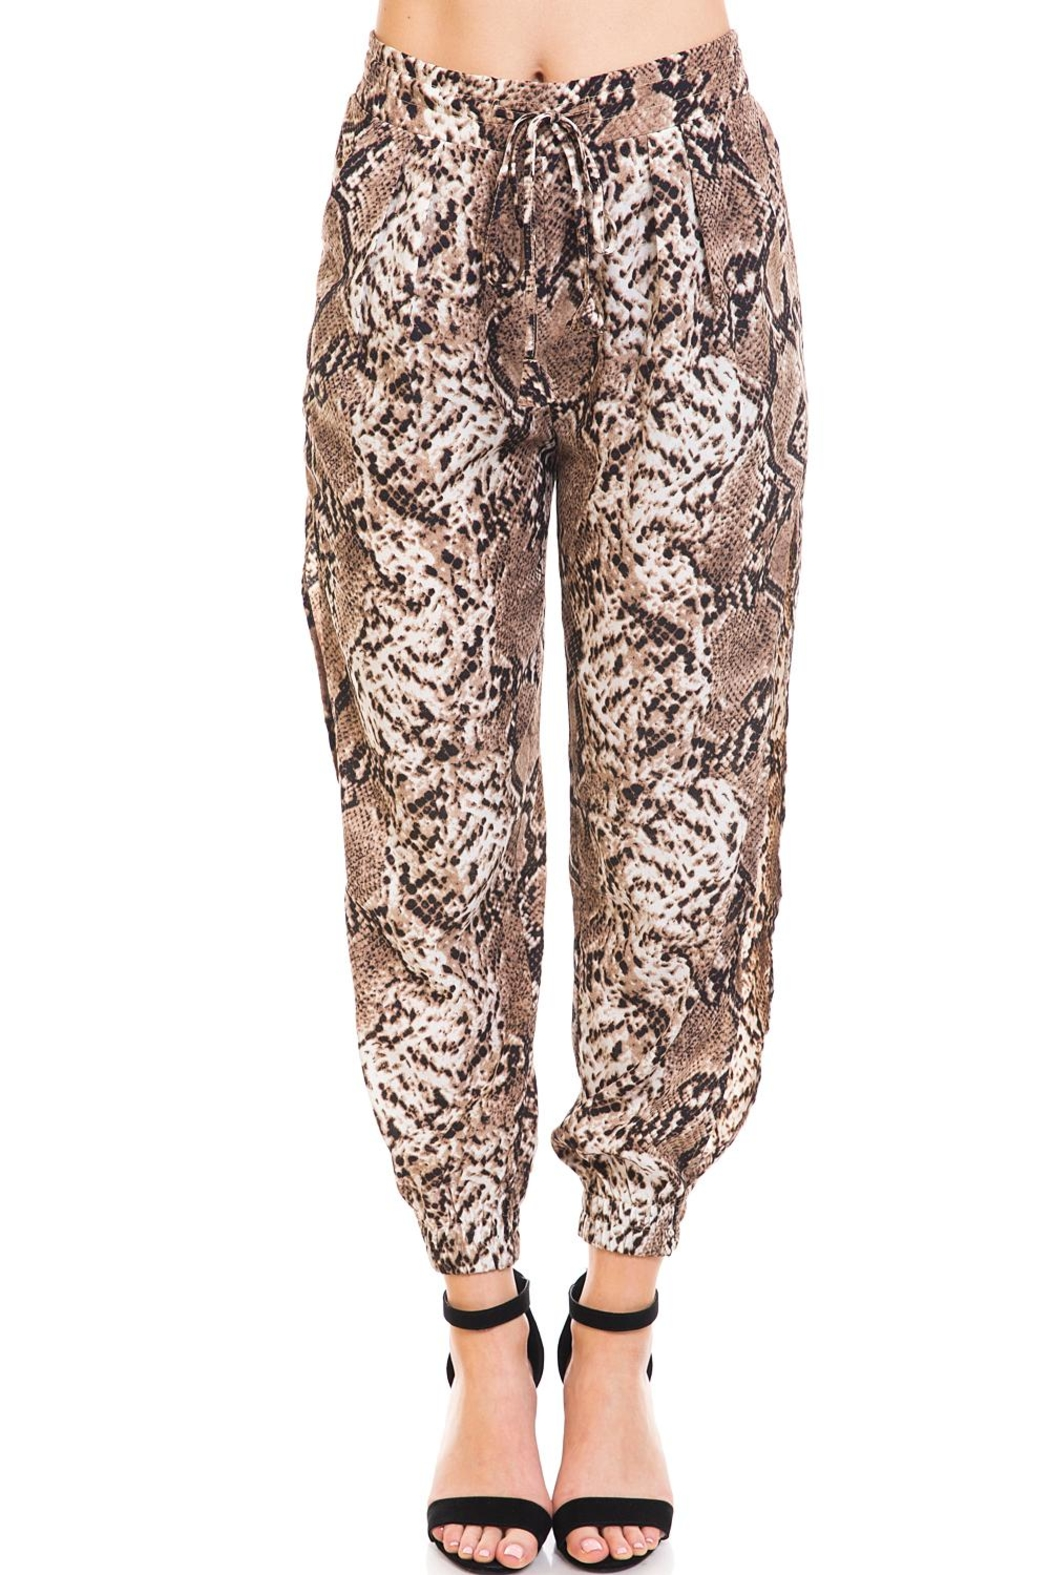 dress forum Snake Print Joggers - Main Image